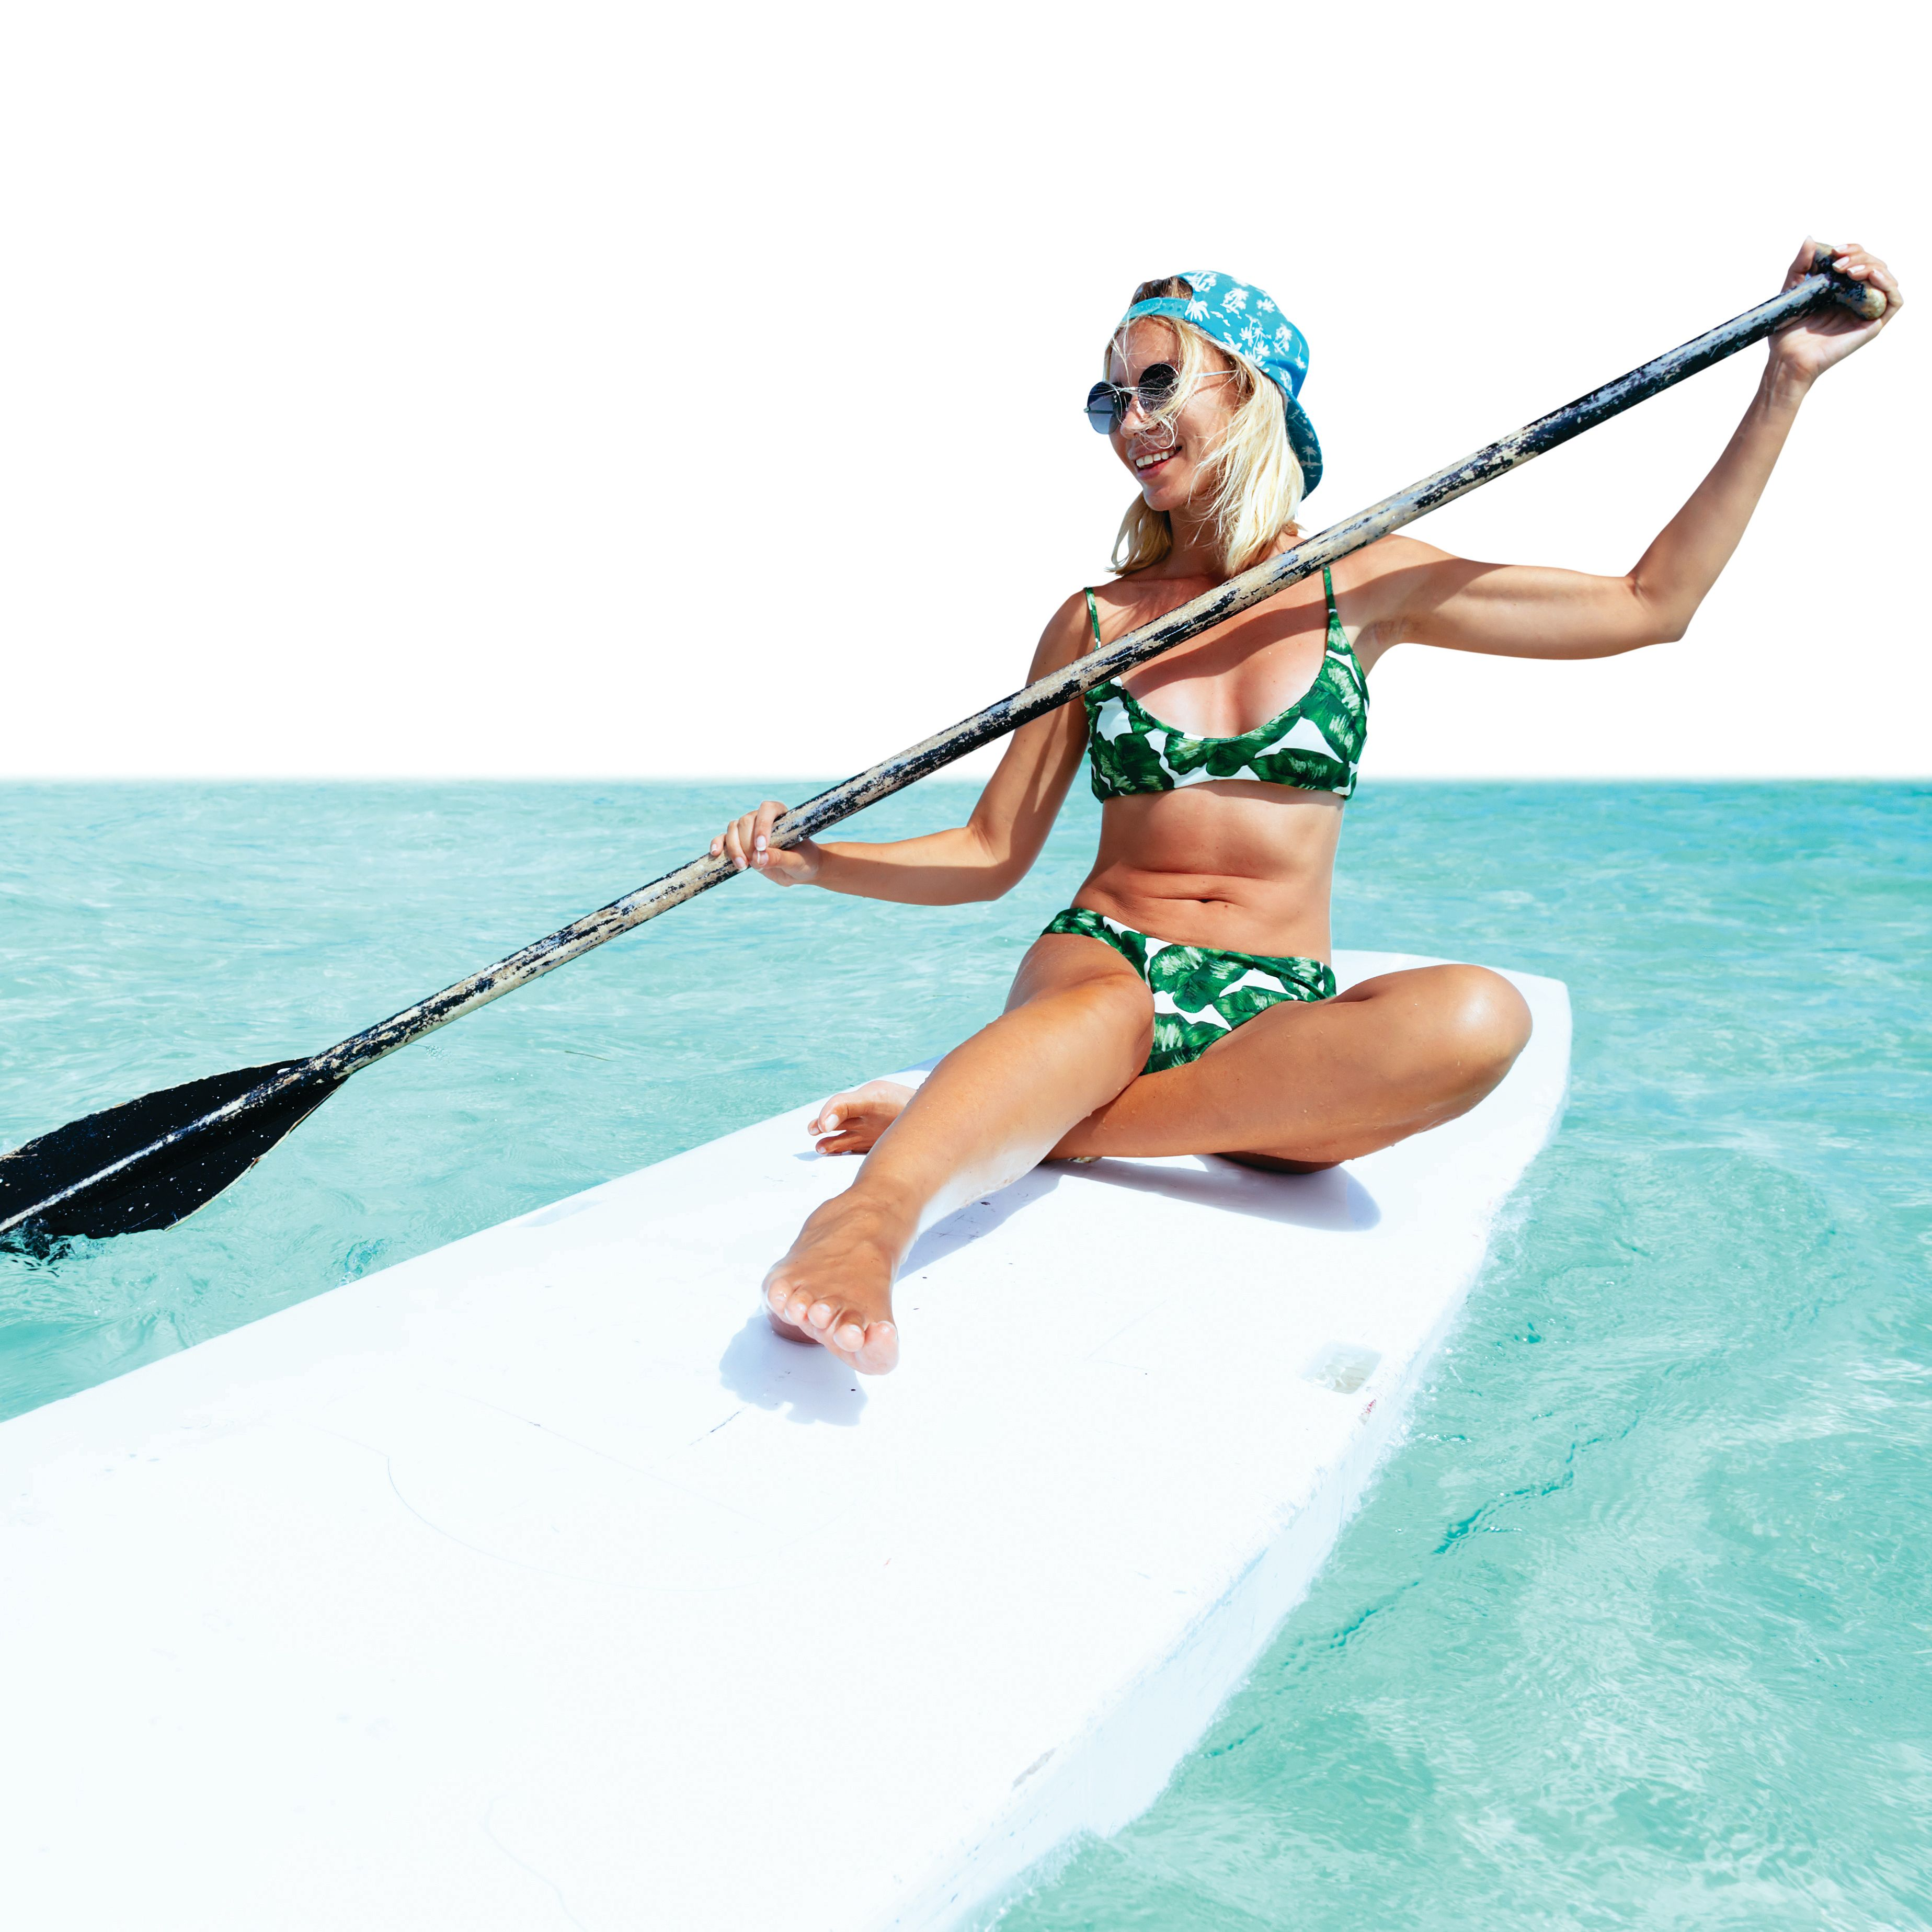 Paddleboarding t3hh5i